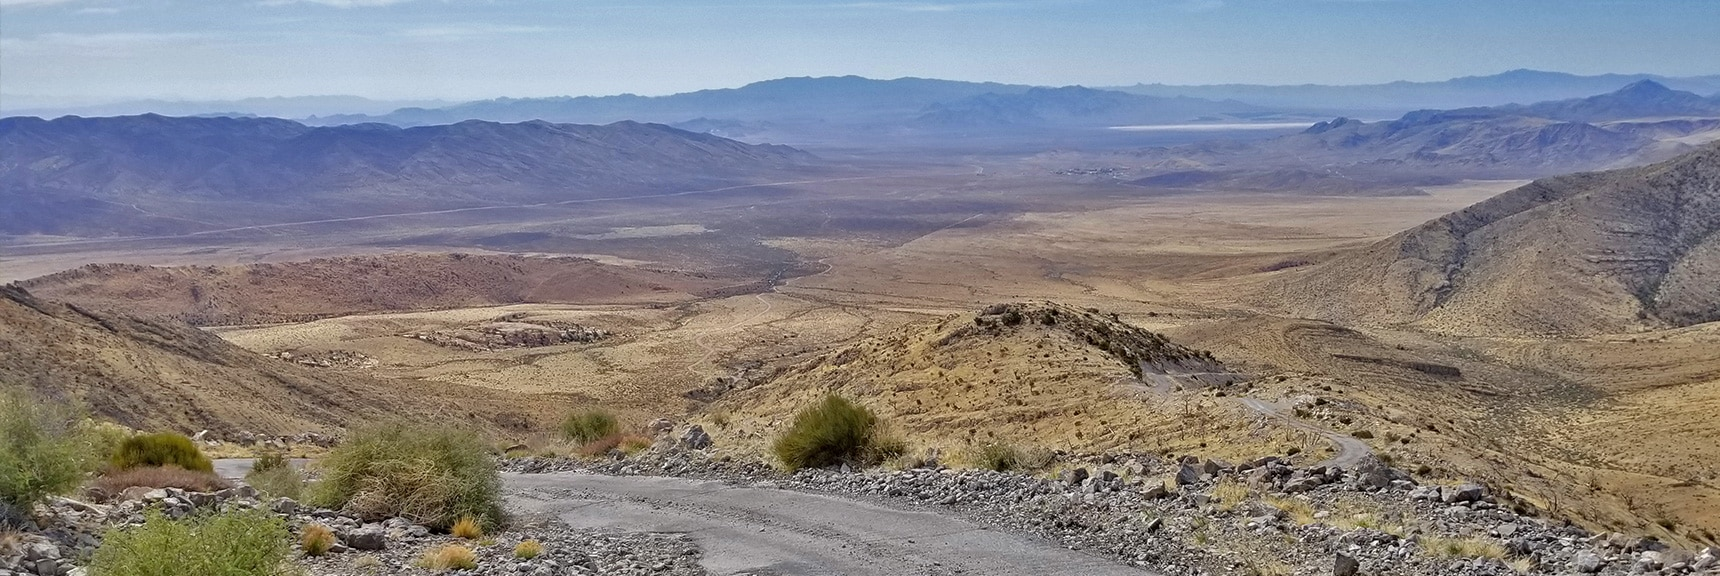 Rapid Ascent Reveals Expanding Panorama of Valley and Mountains Below | Potosi Mountain Spring Mountains Nevada